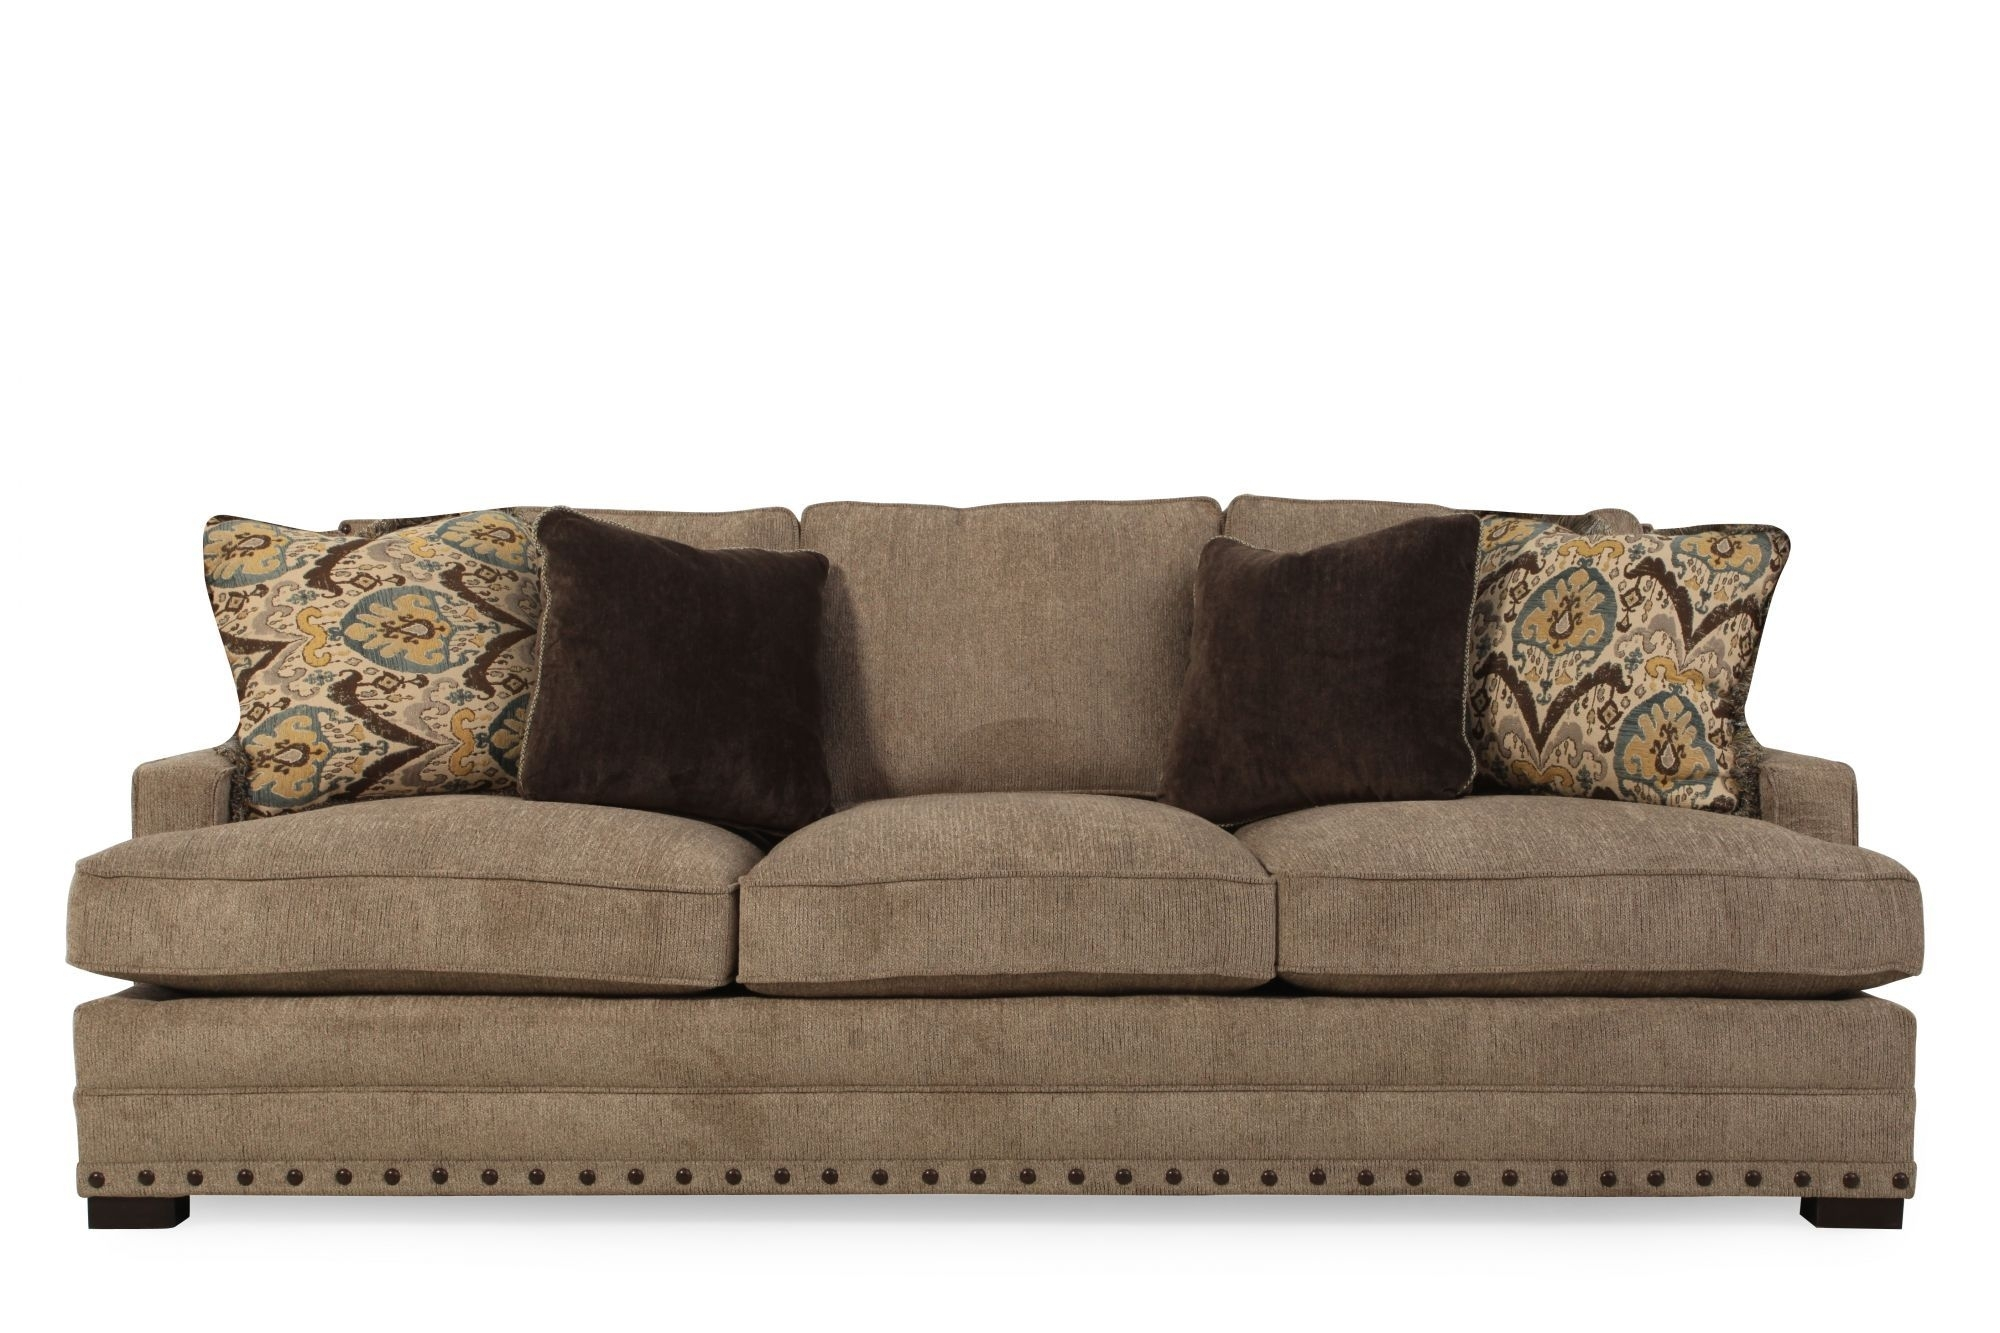 Amazing Bernhardt Cantor Sofa Mathis Brothers Furniture And Throughout Mathis Brothers Sectional Sofas (Image 1 of 10)